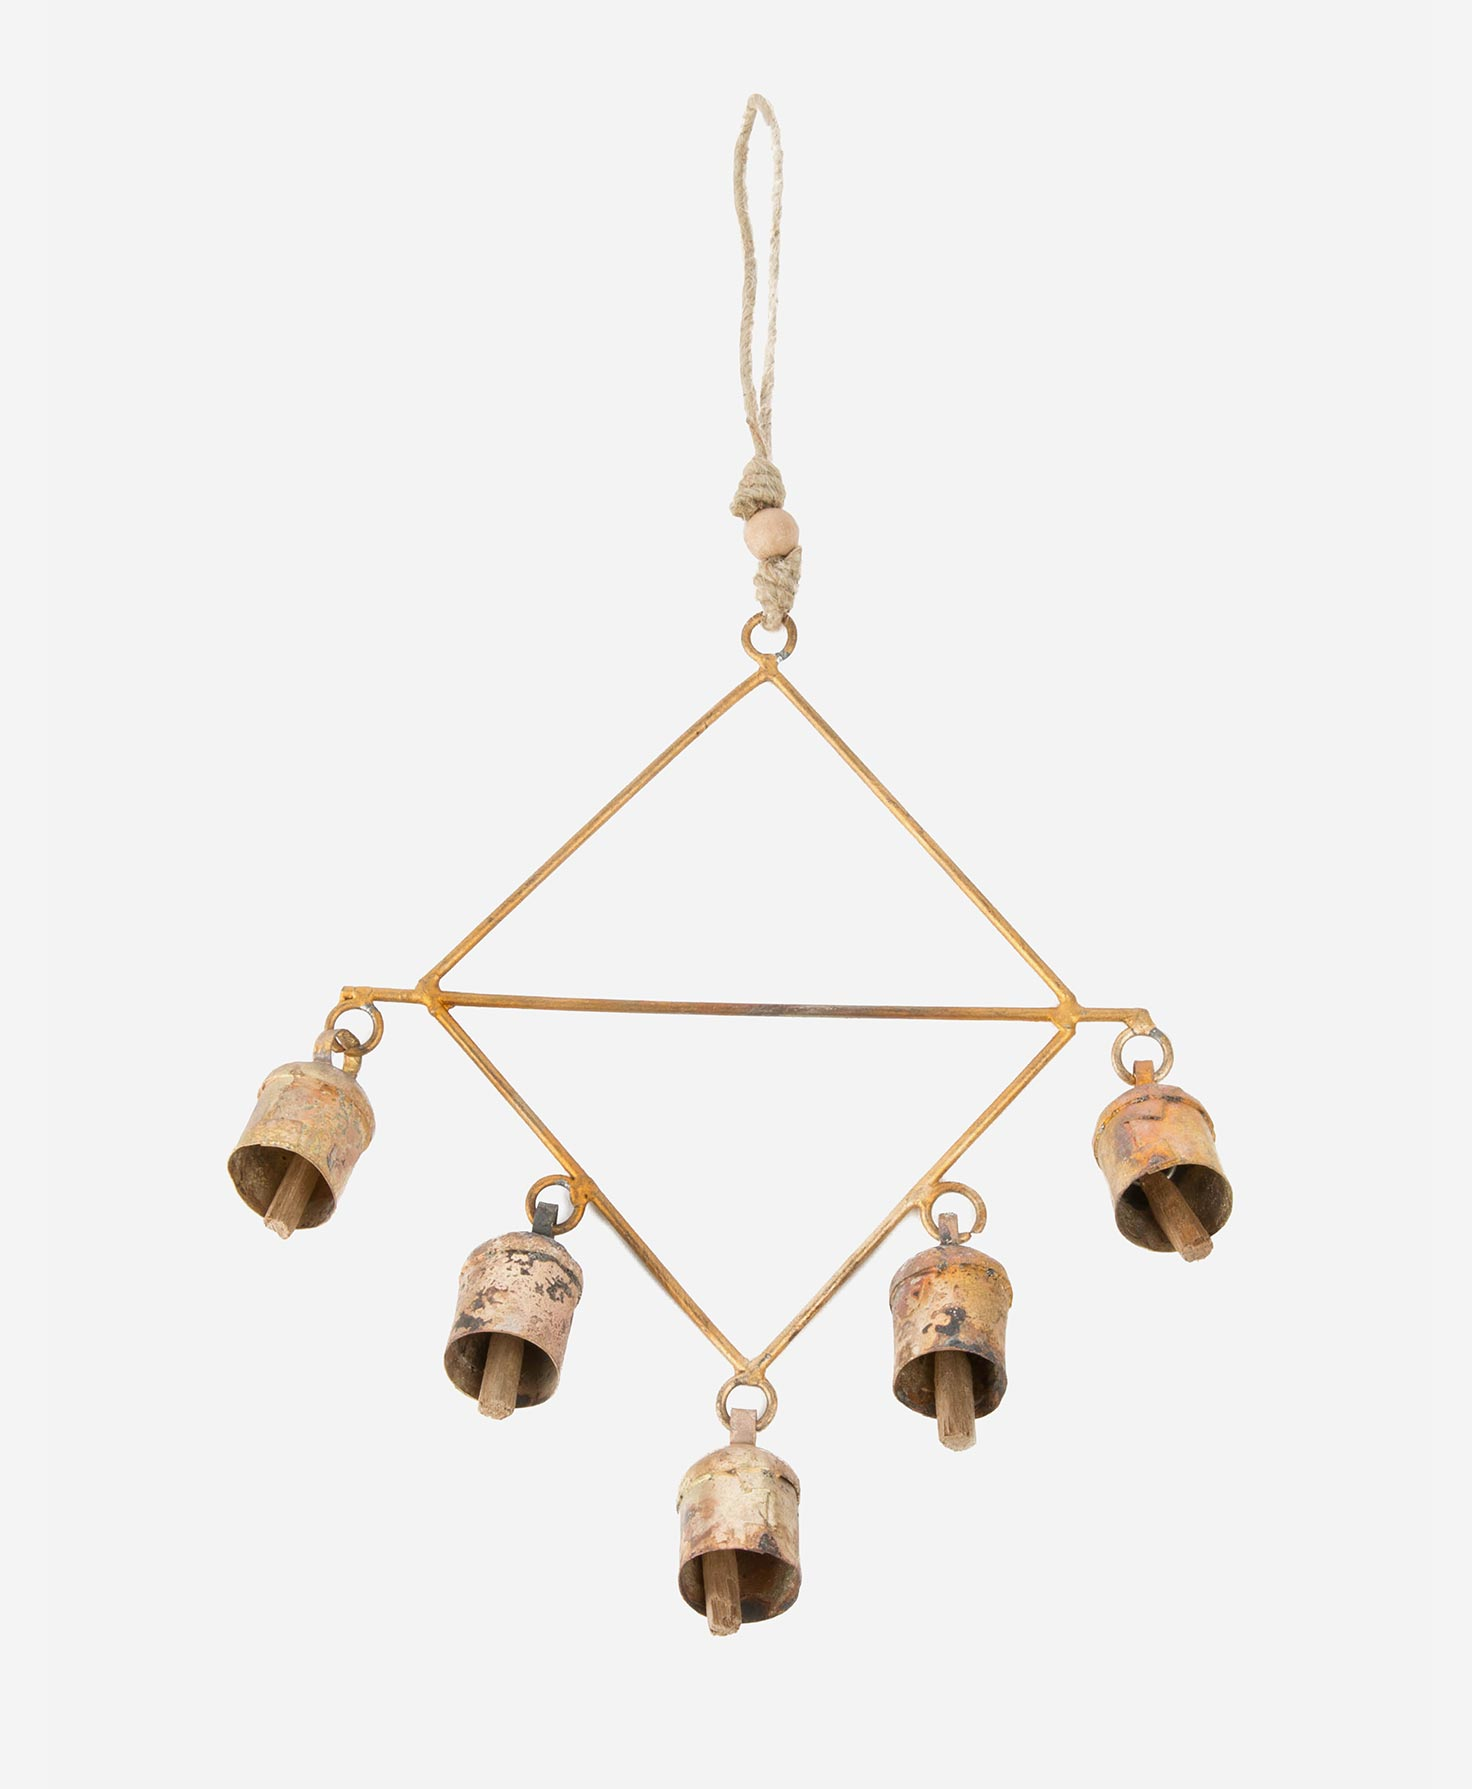 Gold Bell Decoration - Ethical, Sustainable Holiday Gift Guide - That Homebird Life Blog